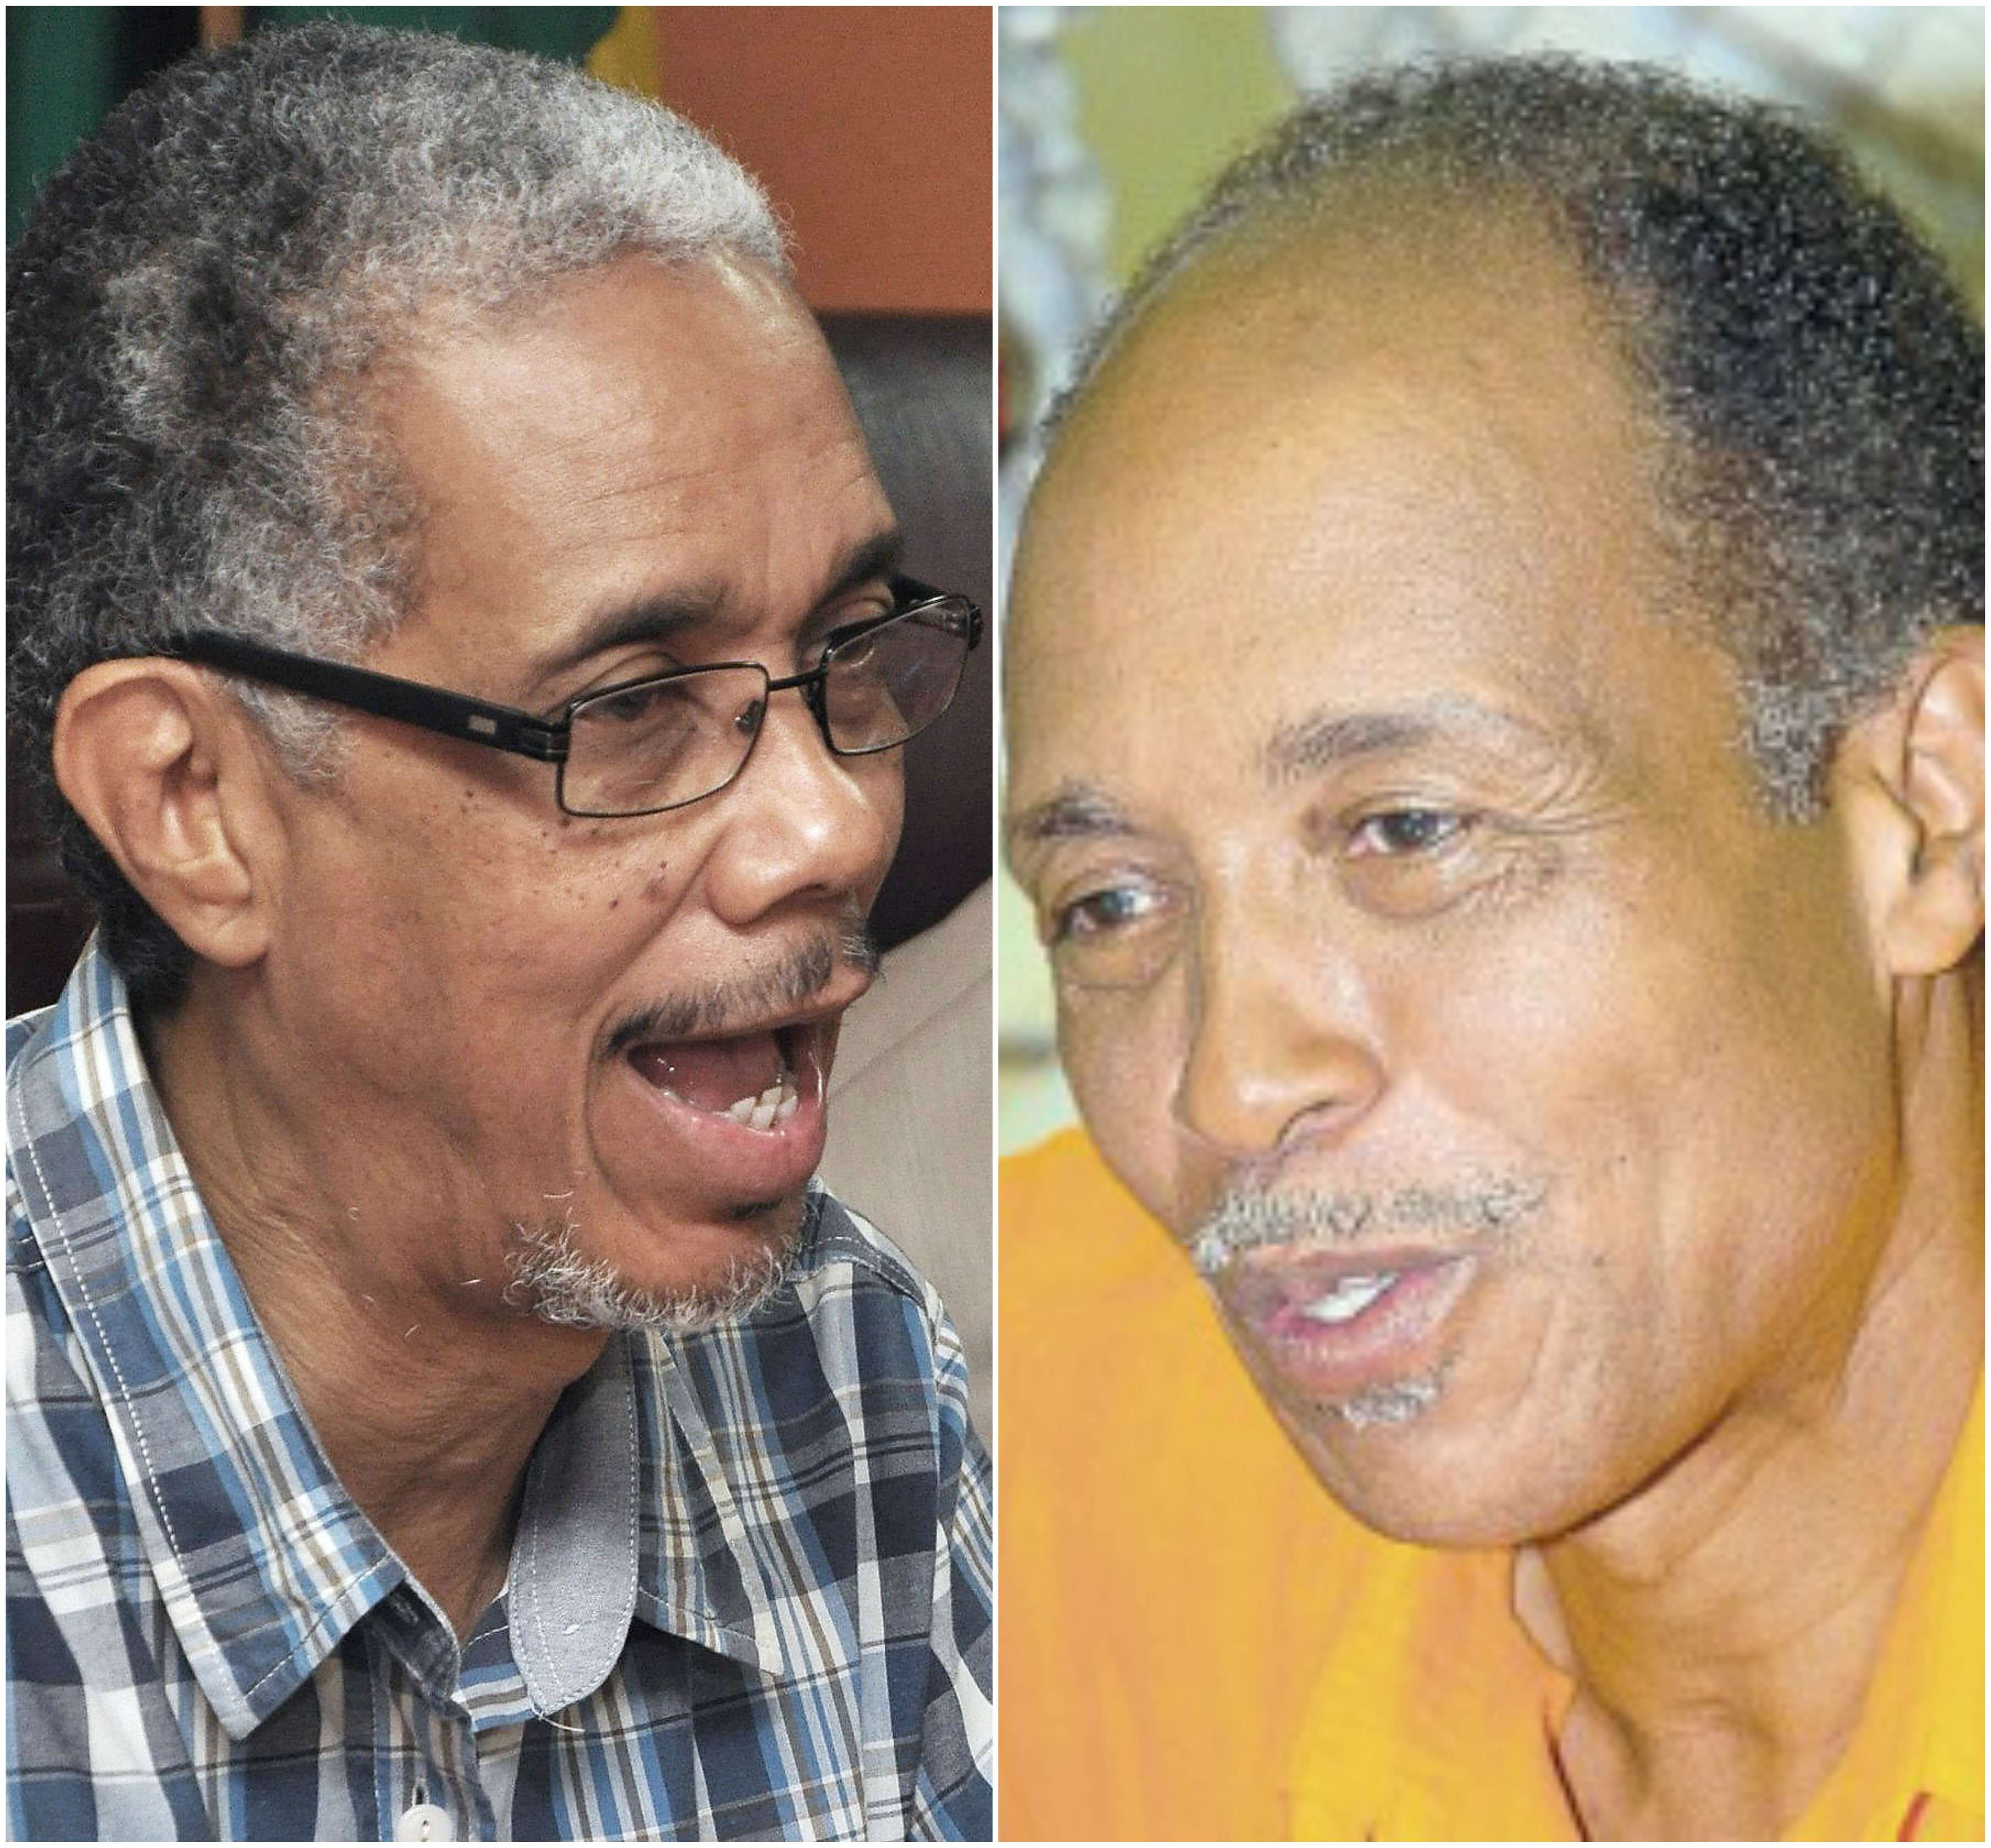 Blythe Fears Violence as Burke Appeals for Unity